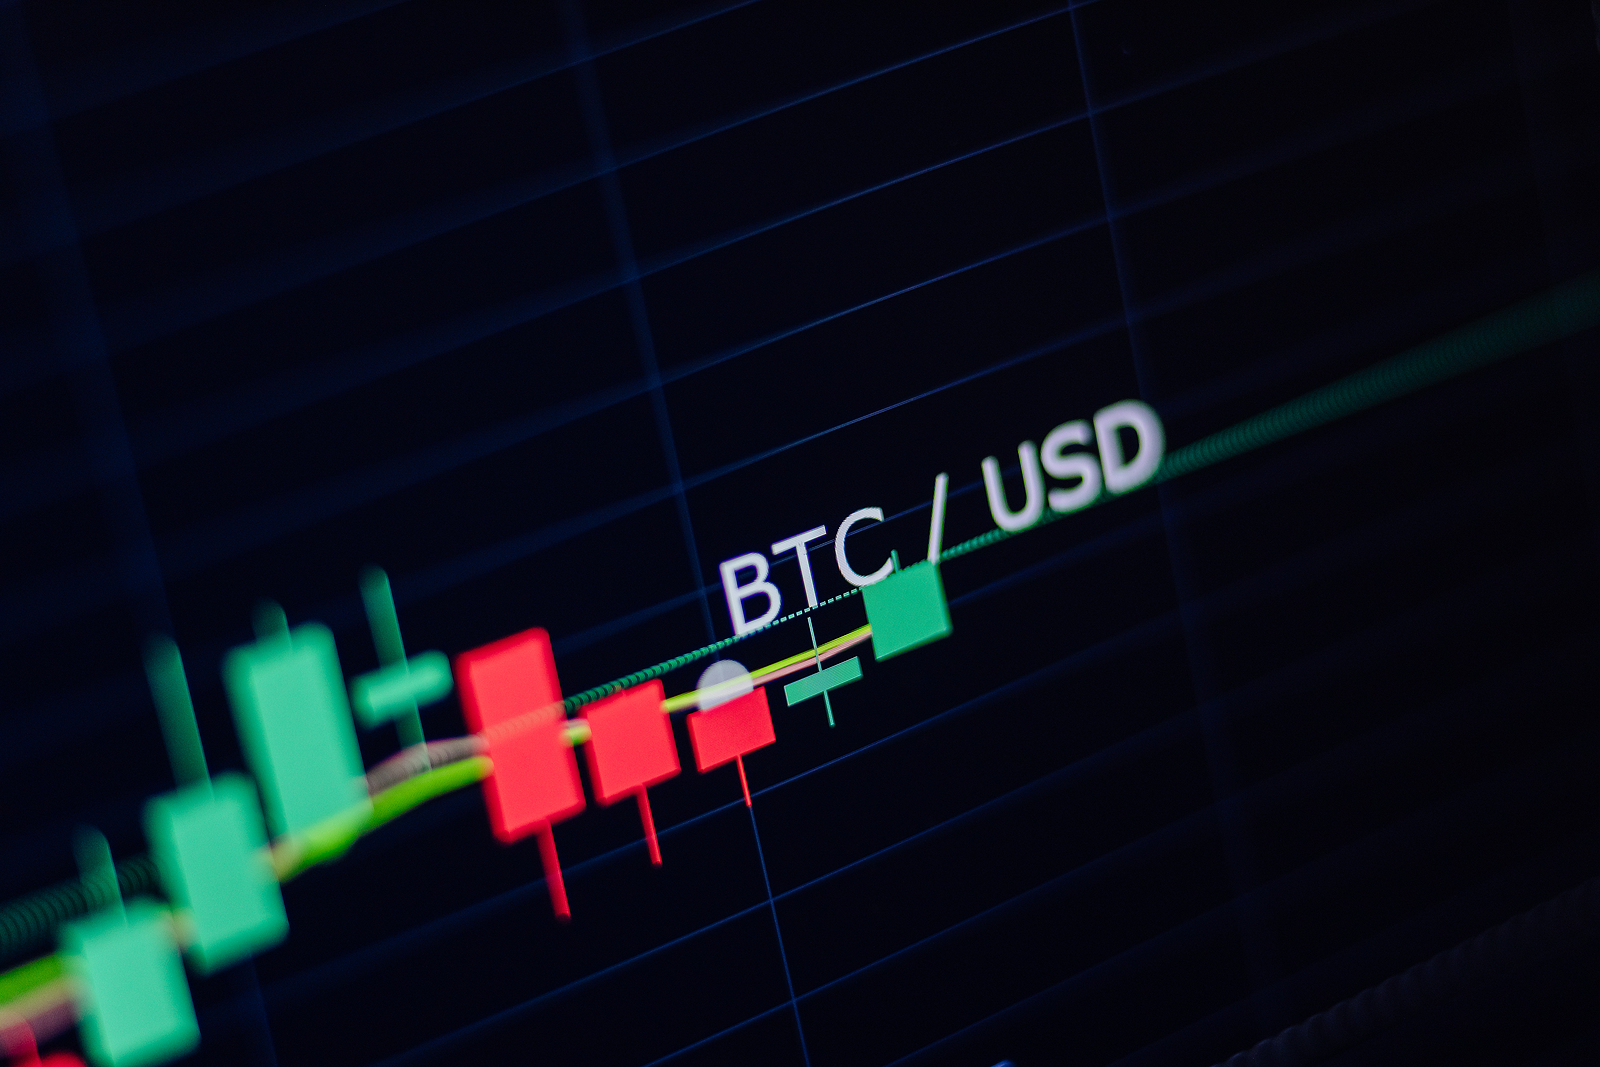 The Hong Kong-based prime brokerage wants to attract traditional hedge funds and institutional investors to crypto derivatives trading.